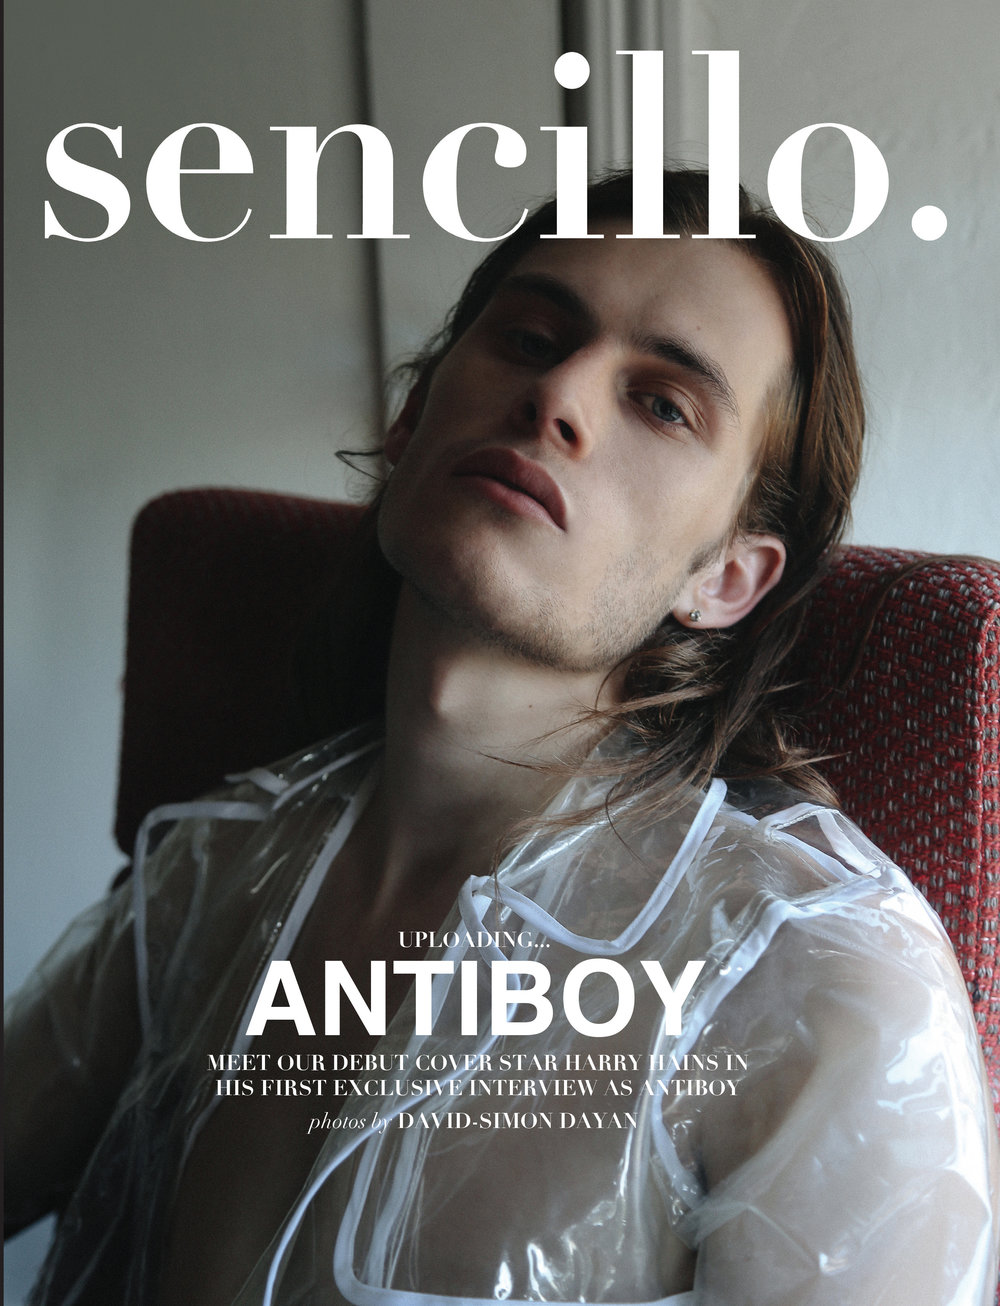 ANTIBOY / SENCILLO MAG COVER STORY    Editorial with musician Antiboy for Sencillo Magazine.  Click title to be redirected.